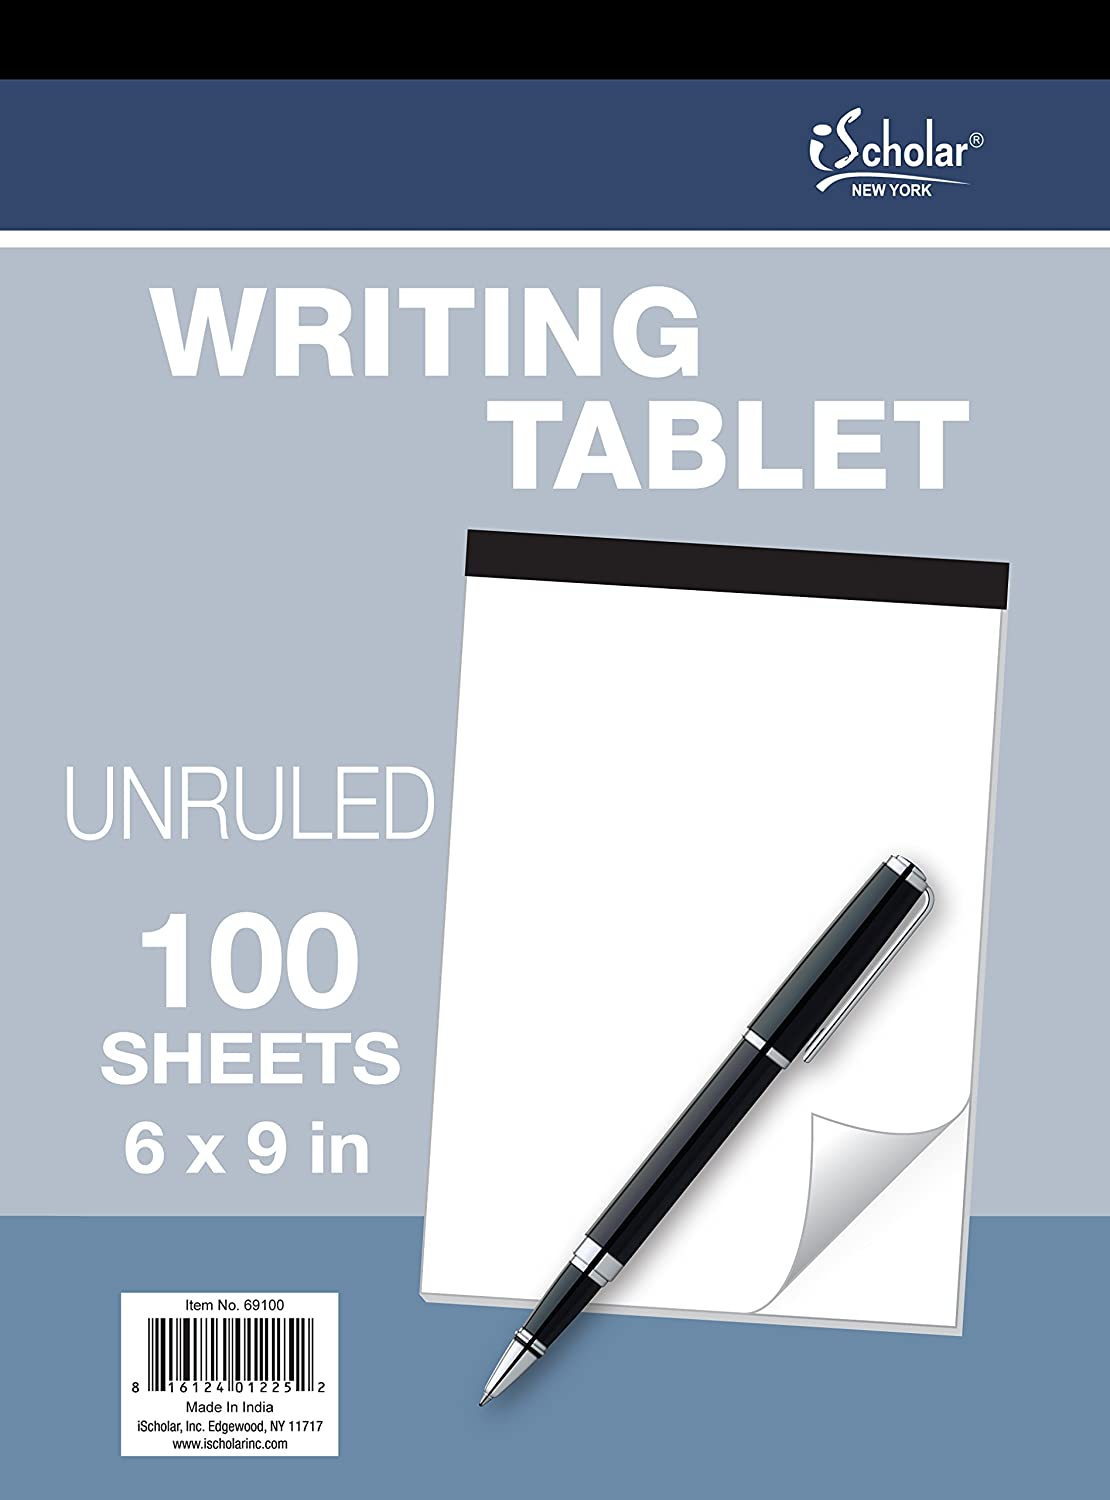 iScholar Writing Tablet, Plain White, 100 Sheets, 6 X 9-Inch - 69100